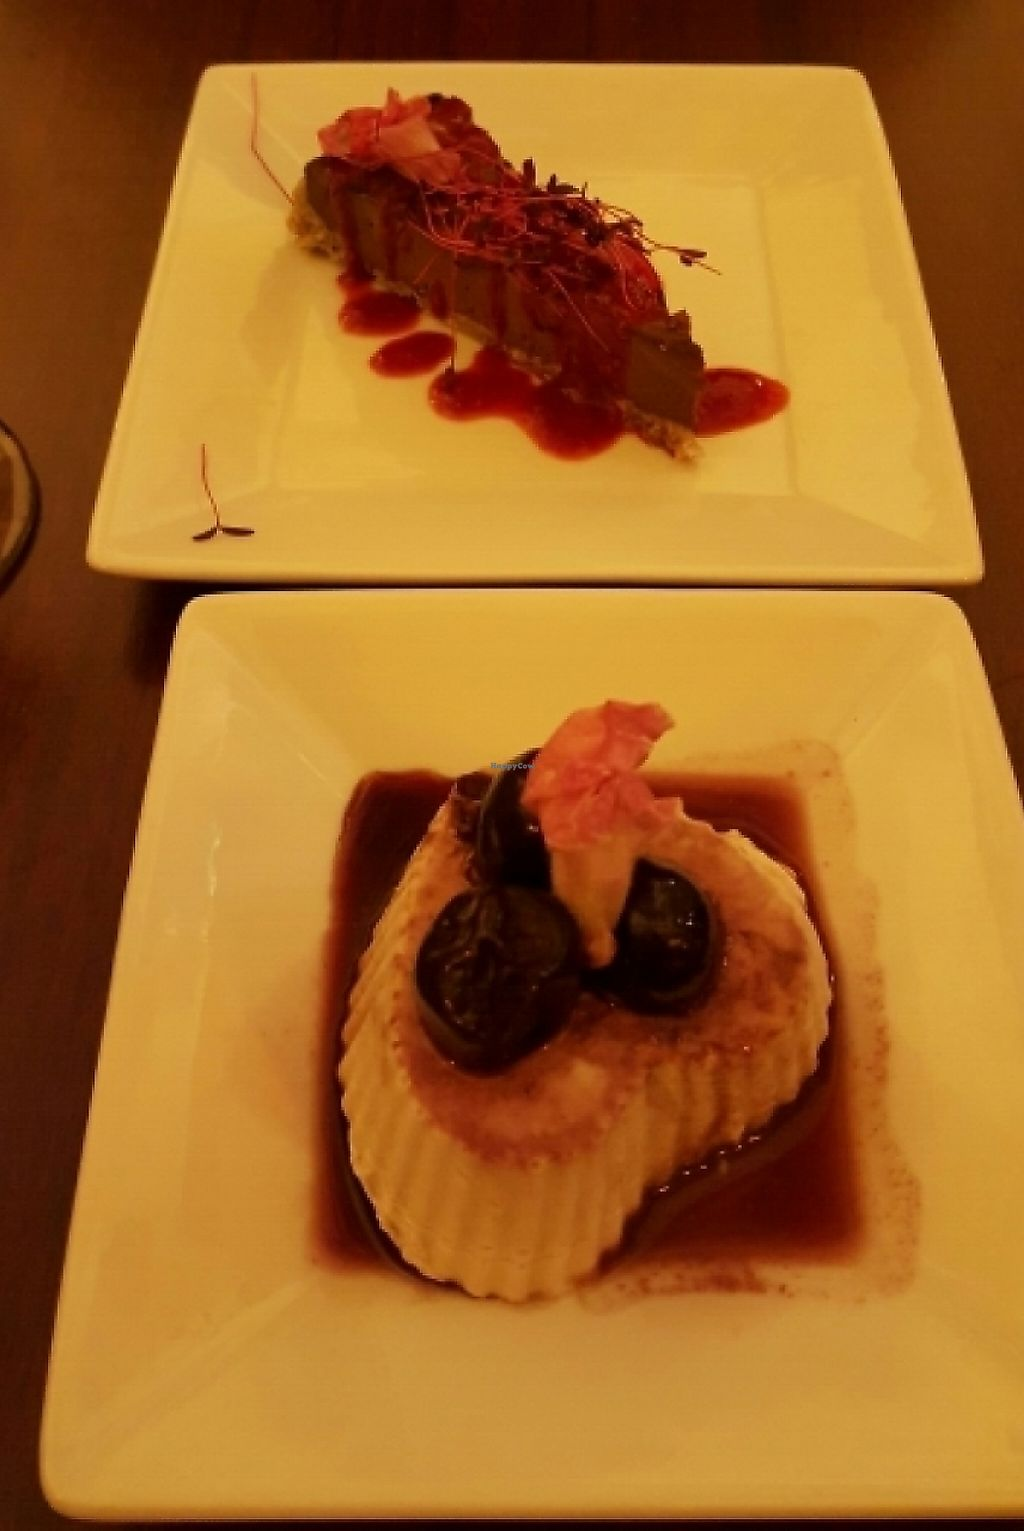 """Photo of Love Yourself Cafe  by <a href=""""/members/profile/LisaVegan77"""">LisaVegan77</a> <br/>Valentine's Day desserts <br/> February 17, 2016  - <a href='/contact/abuse/image/64491/209293'>Report</a>"""